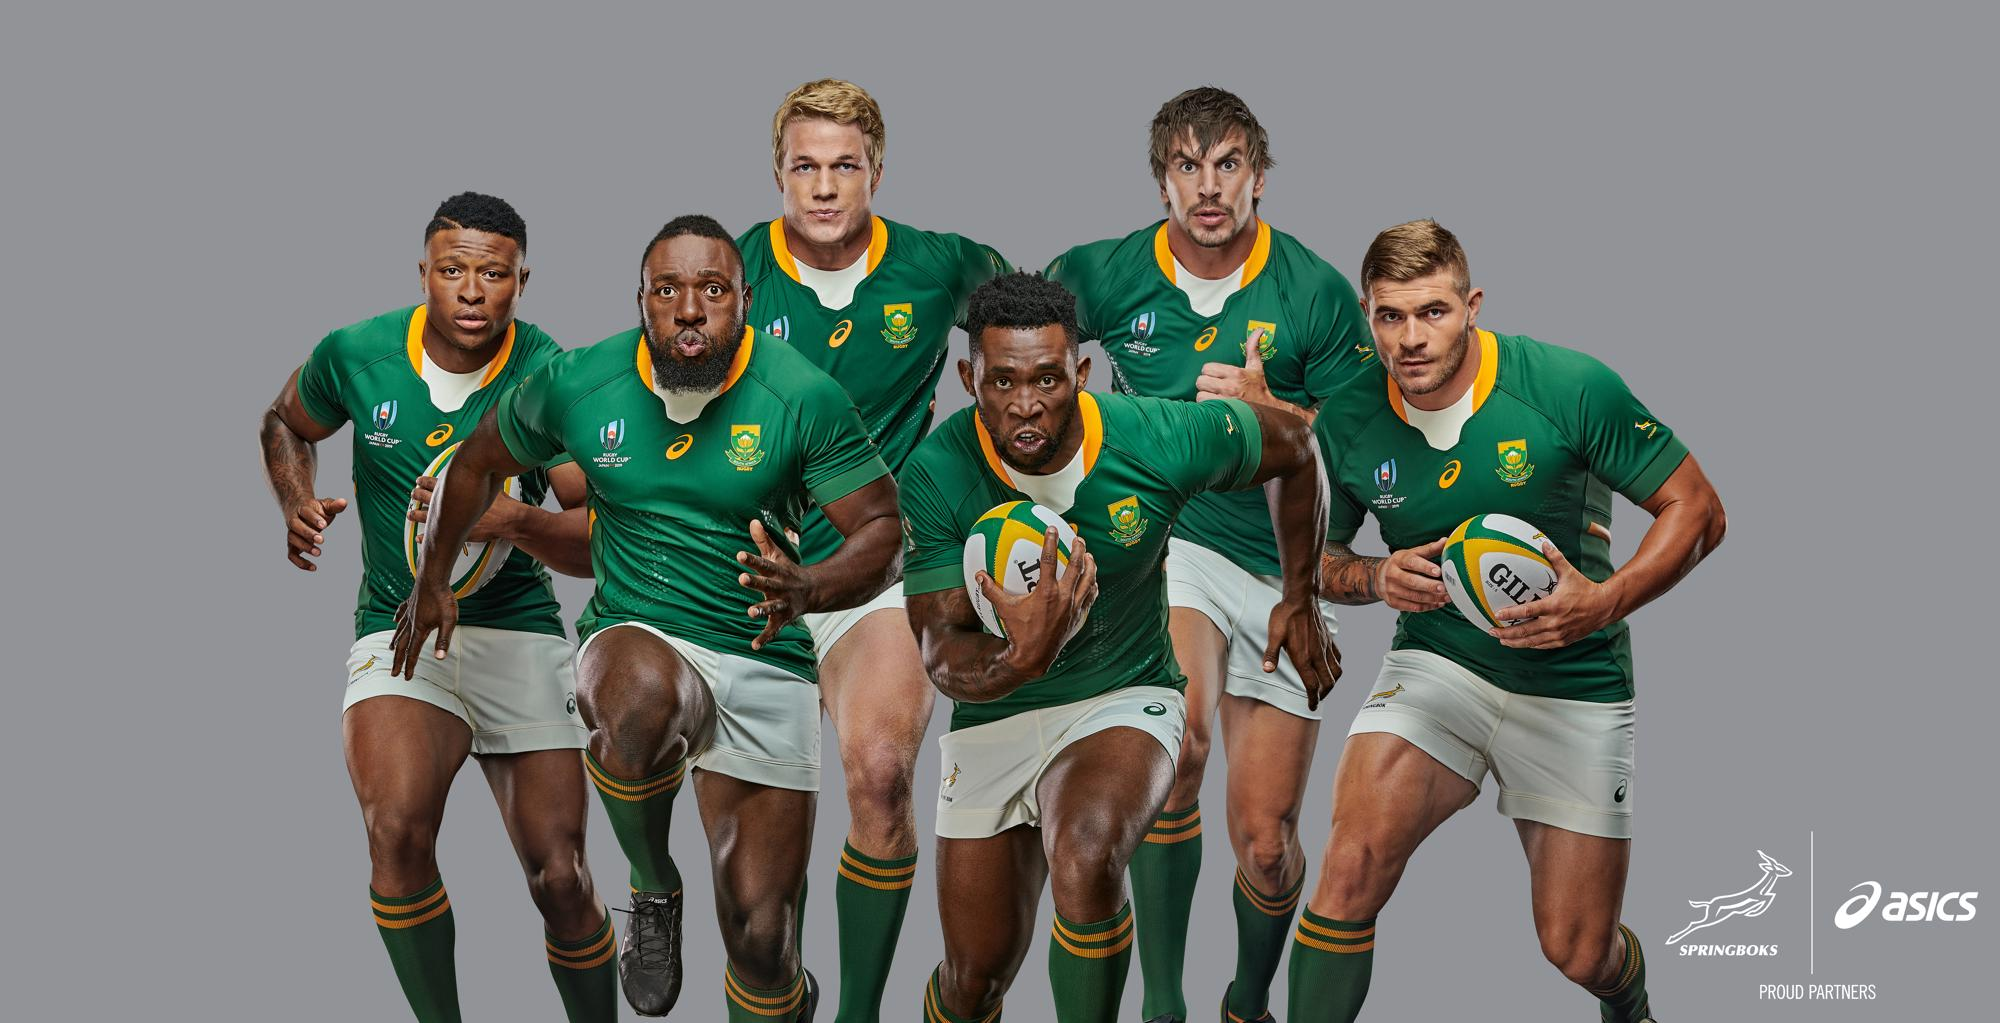 asics launch new  u2018unstoppable u2019 springbok jersey for 2019 rugby world cup